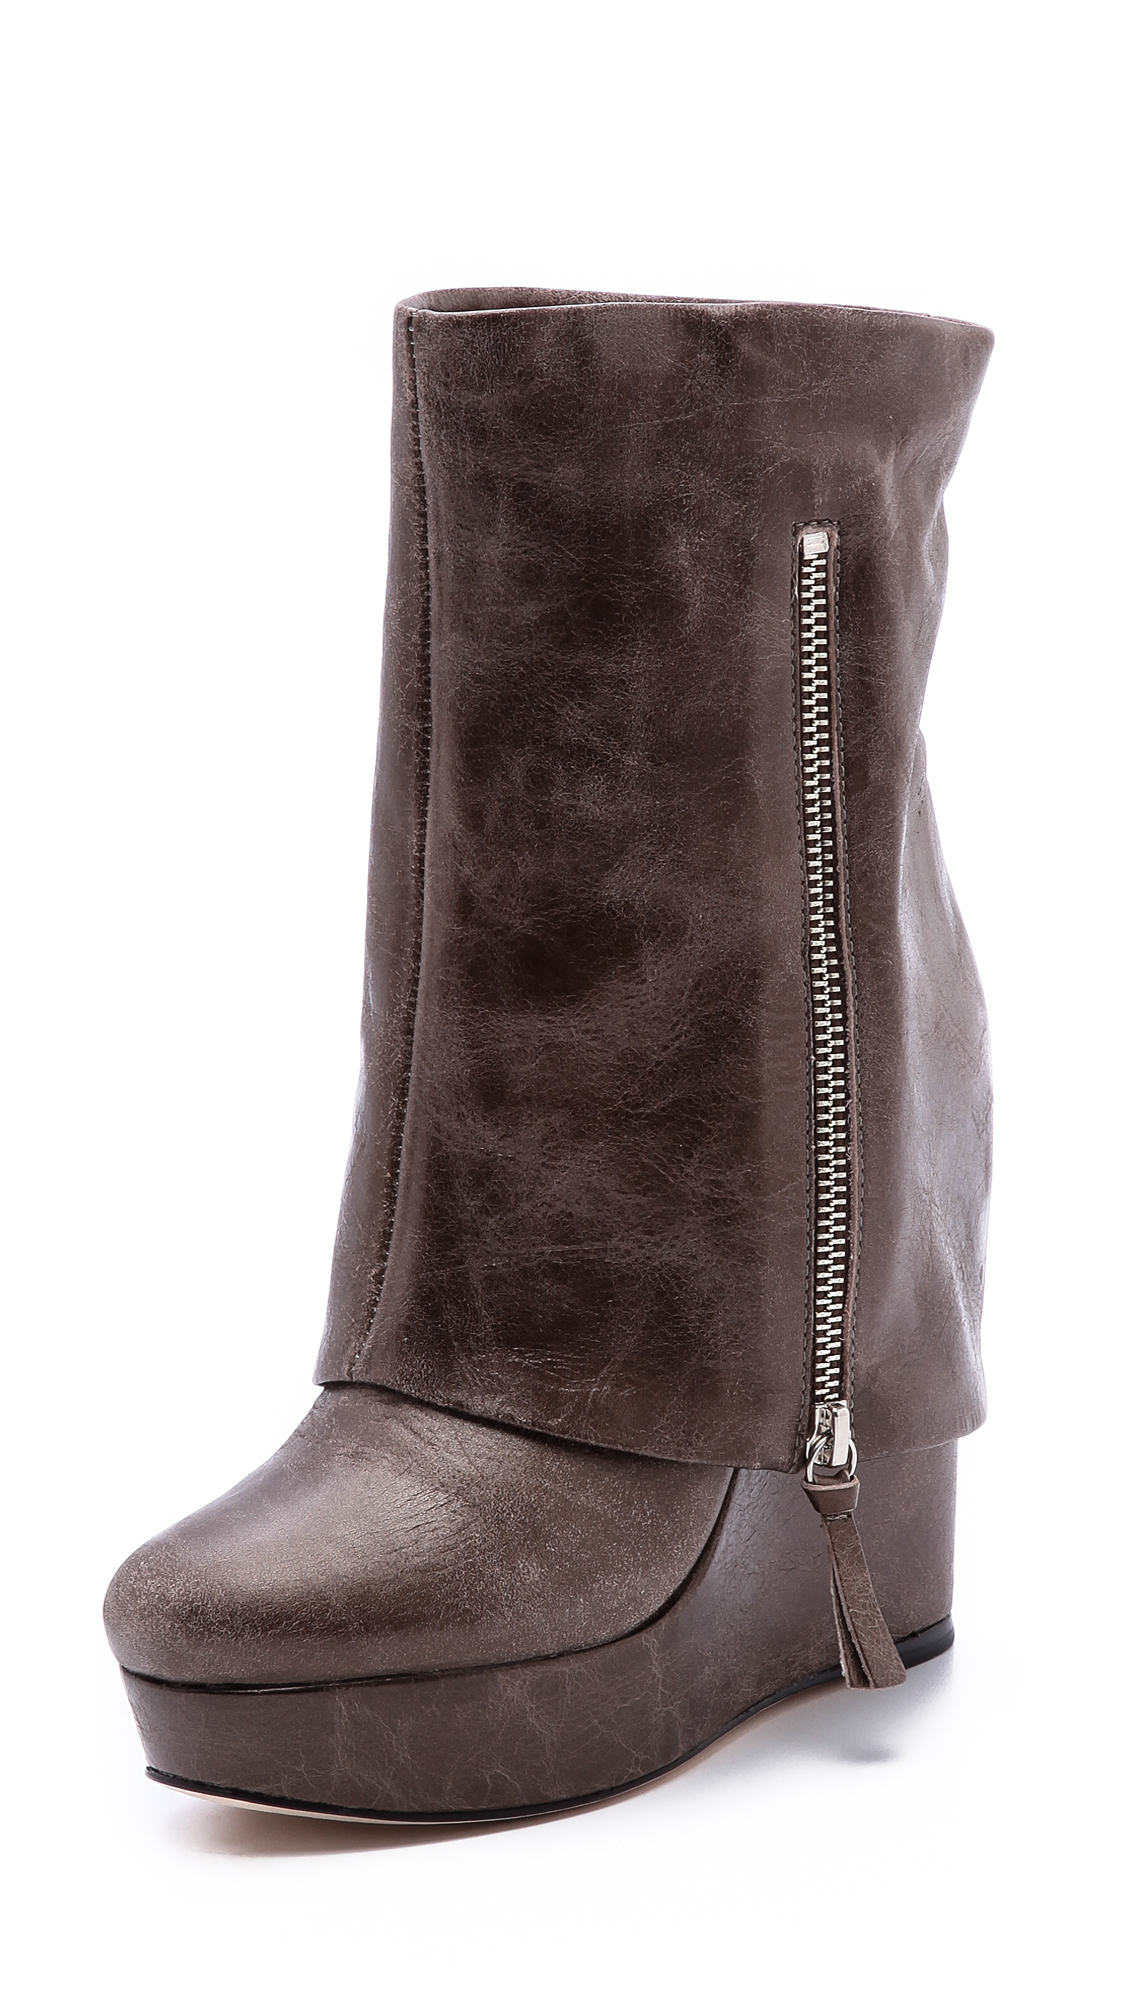 yeardley leather cuff boots in brown taupe